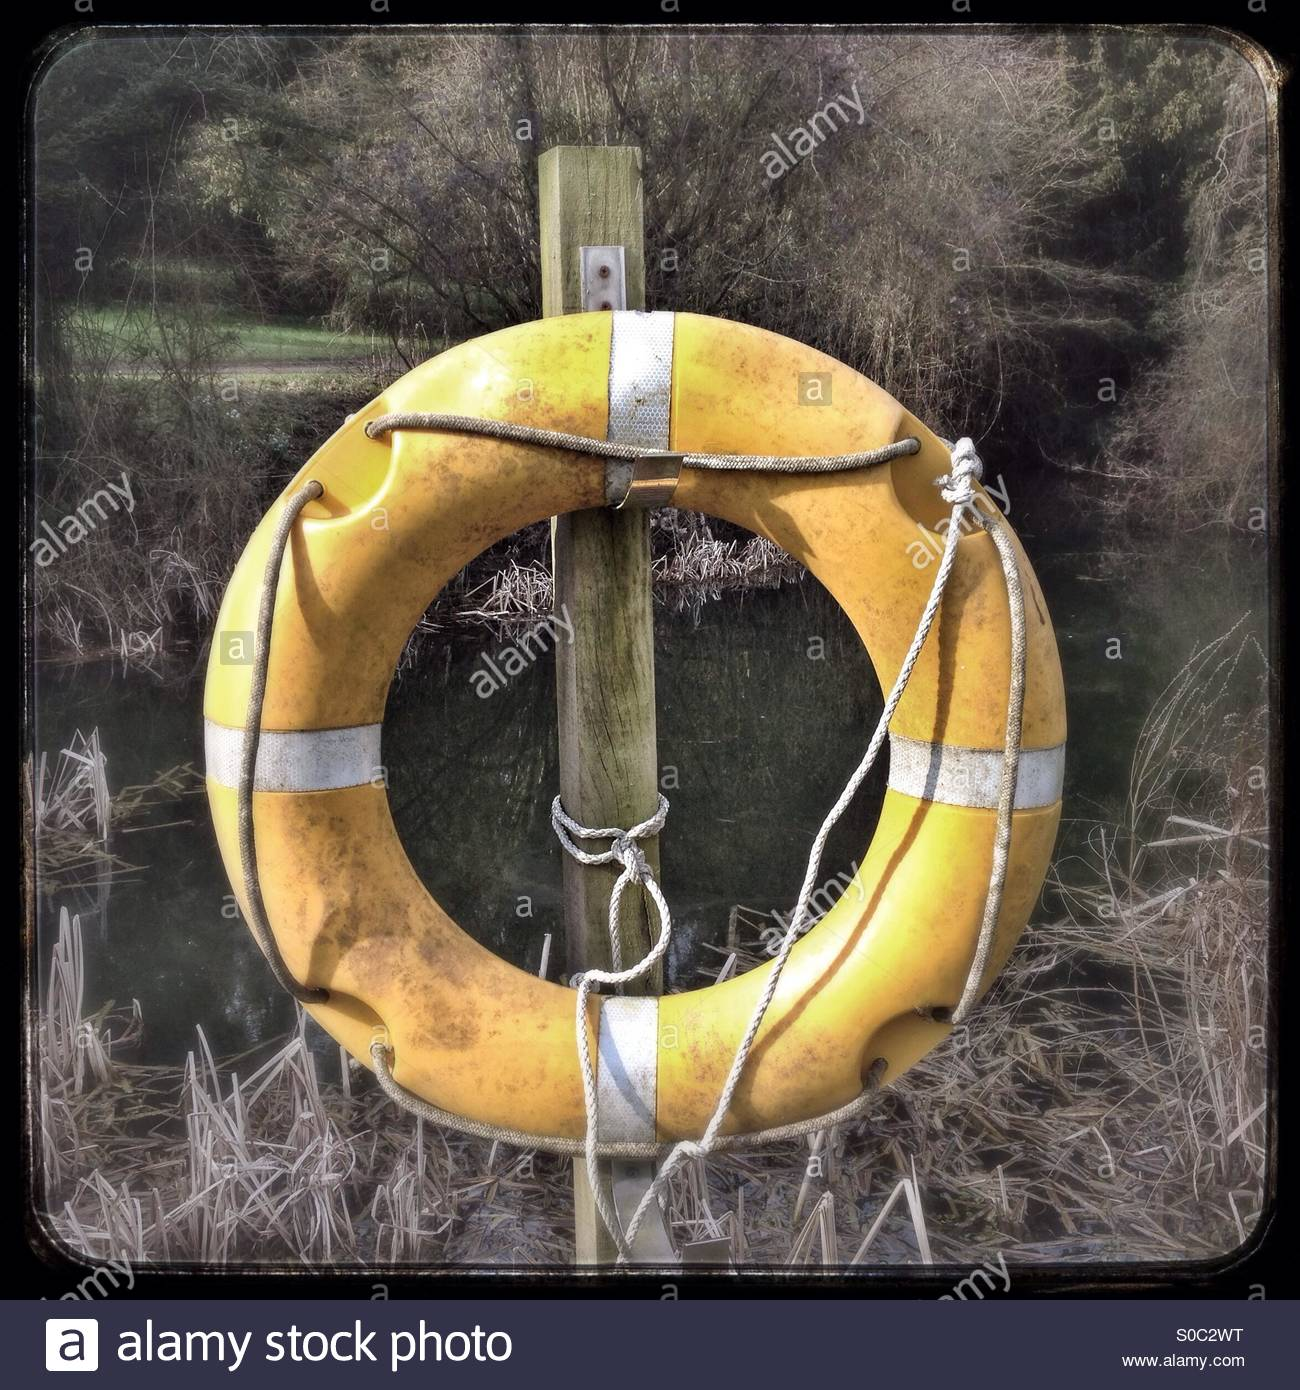 Yellow life saver rubber ring by a lake. - Stock Image